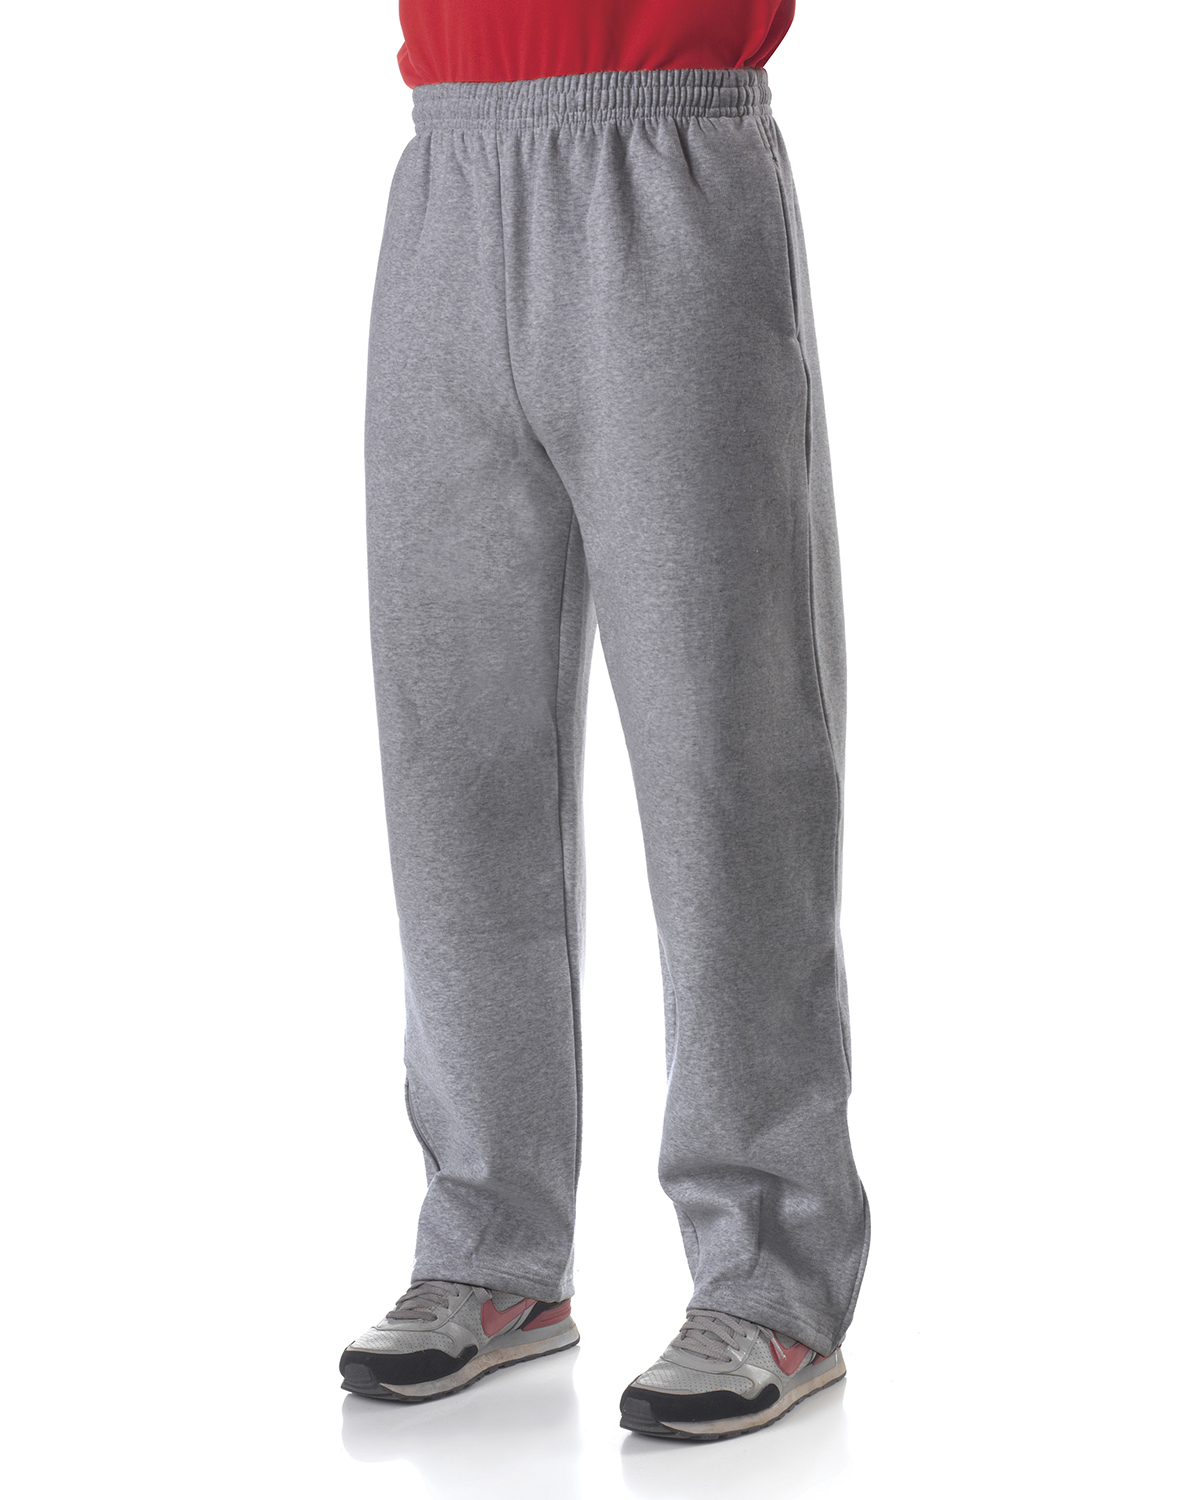 A4 Drop Ship N6189 - Men's Open Bottom Pocketed Fleece Pants